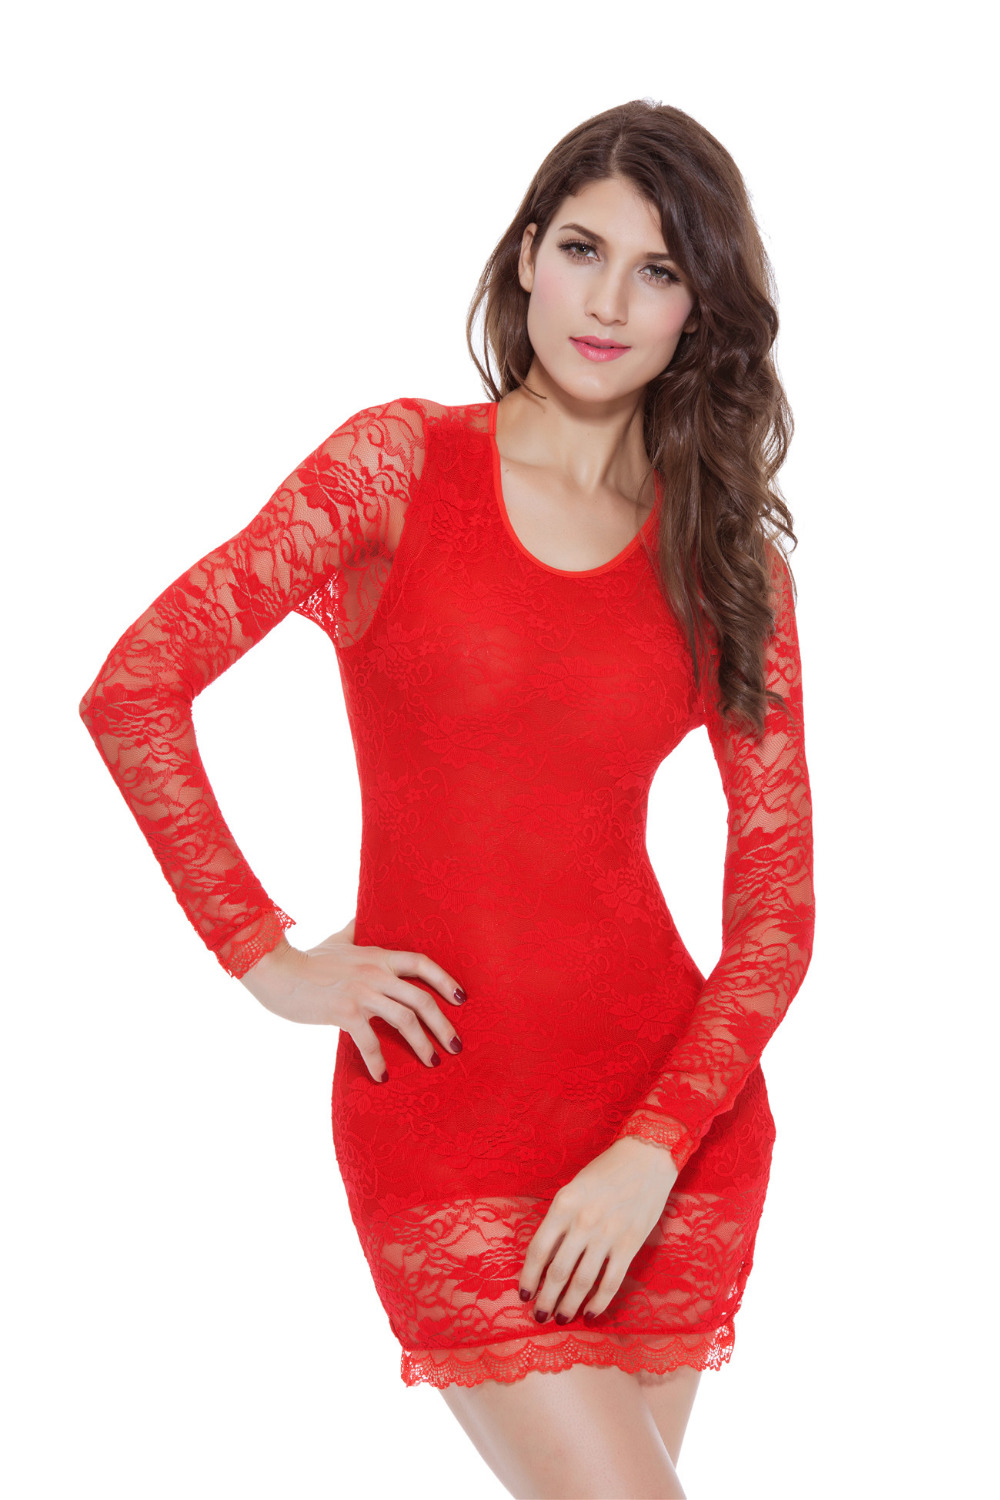 women's naughty knot body bow valentines day sexy dress lace, Ideas